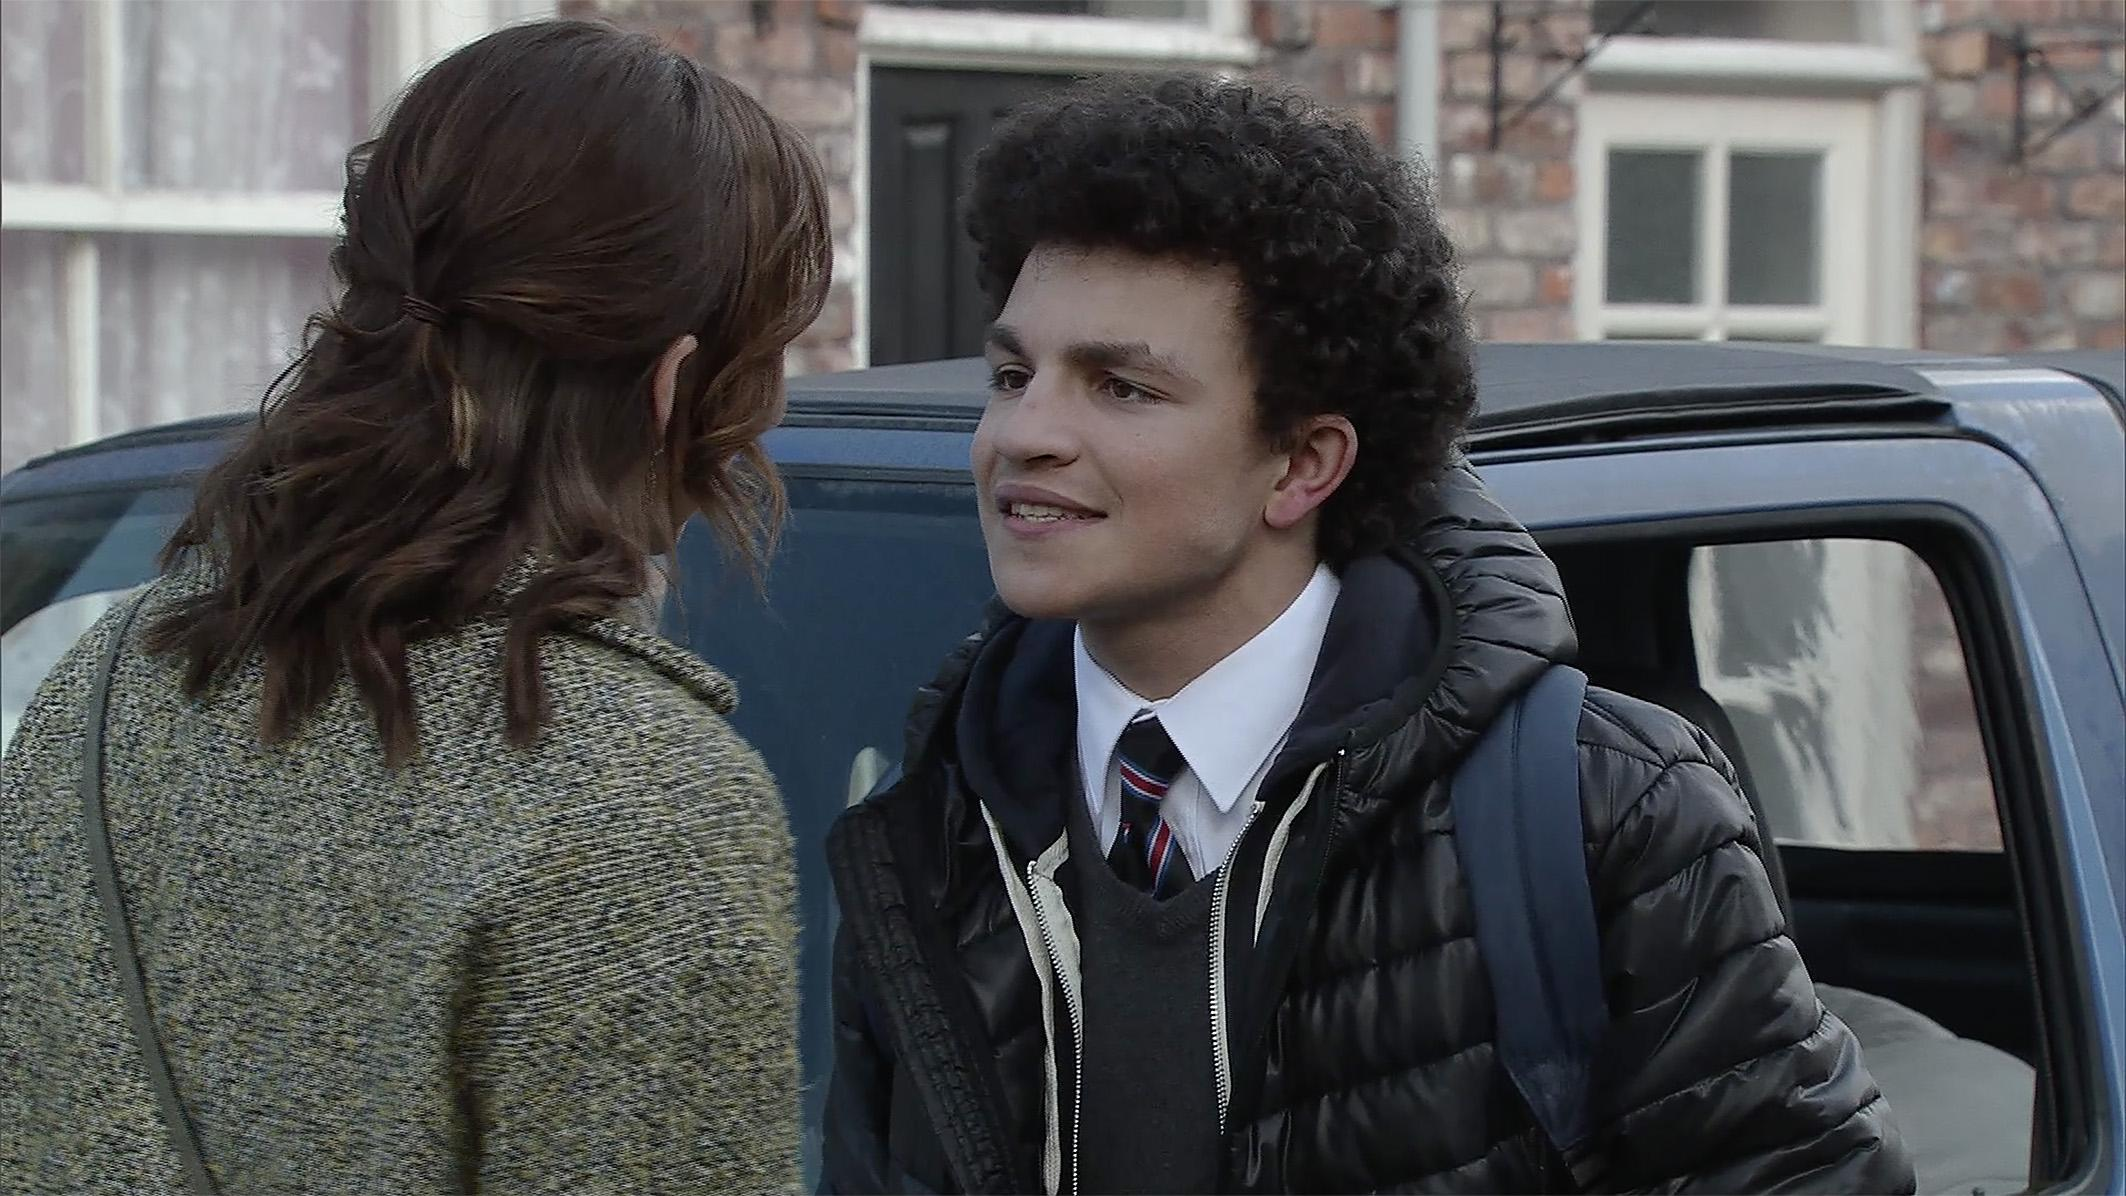 how old is simon barlow in real life